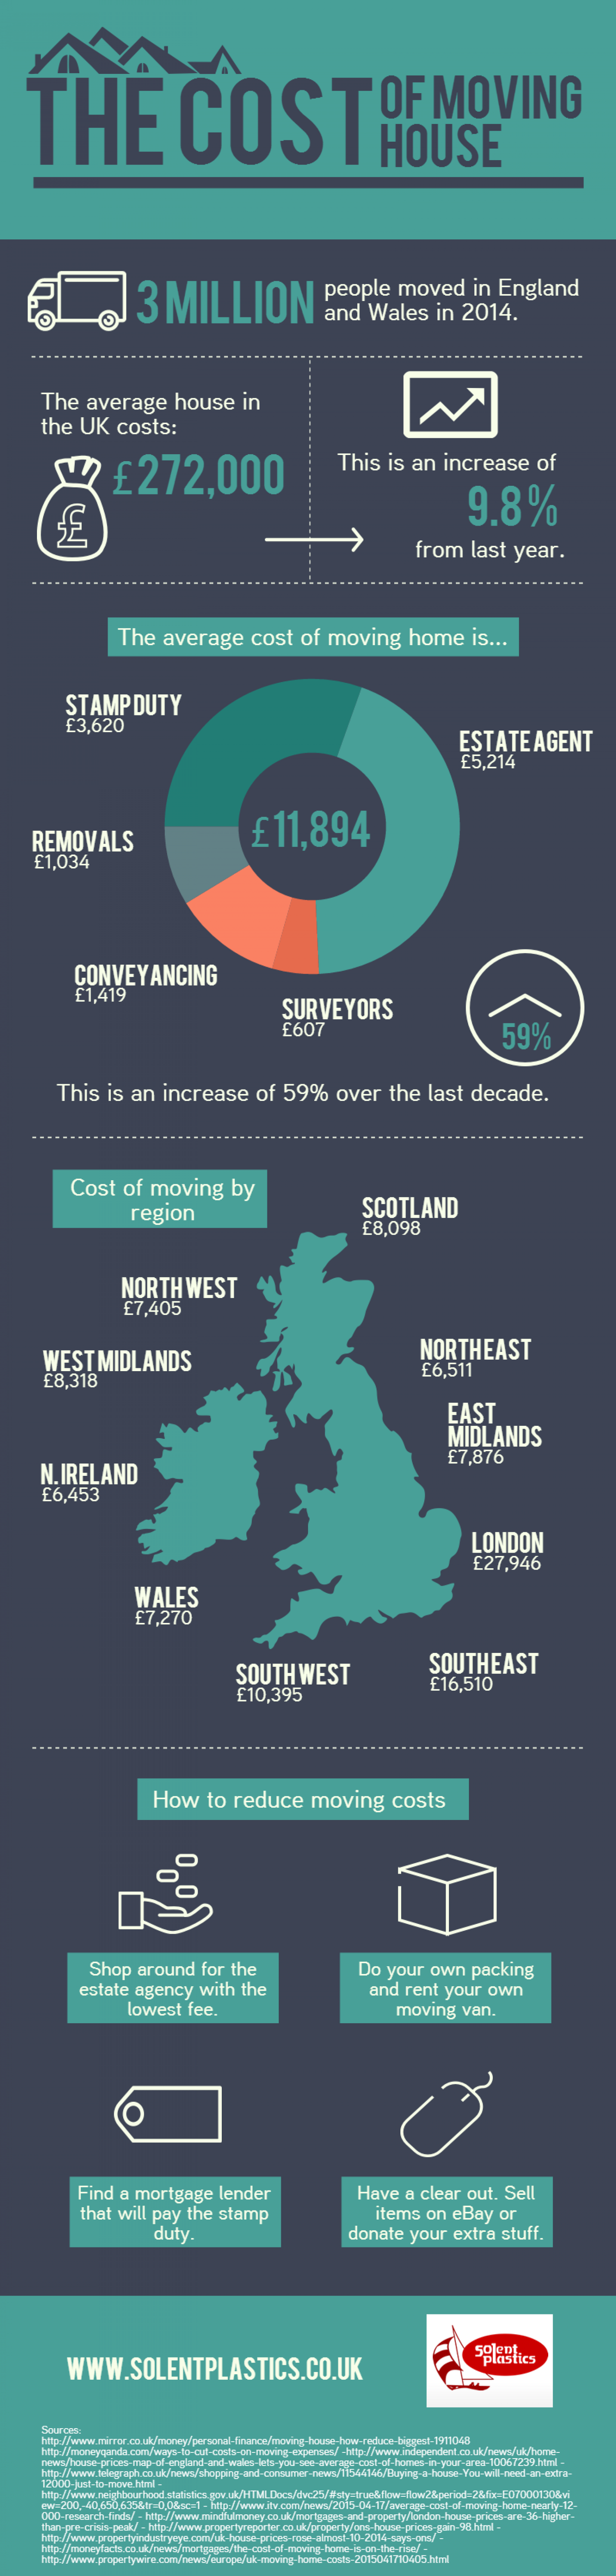 The Cost of Moving House Infographic